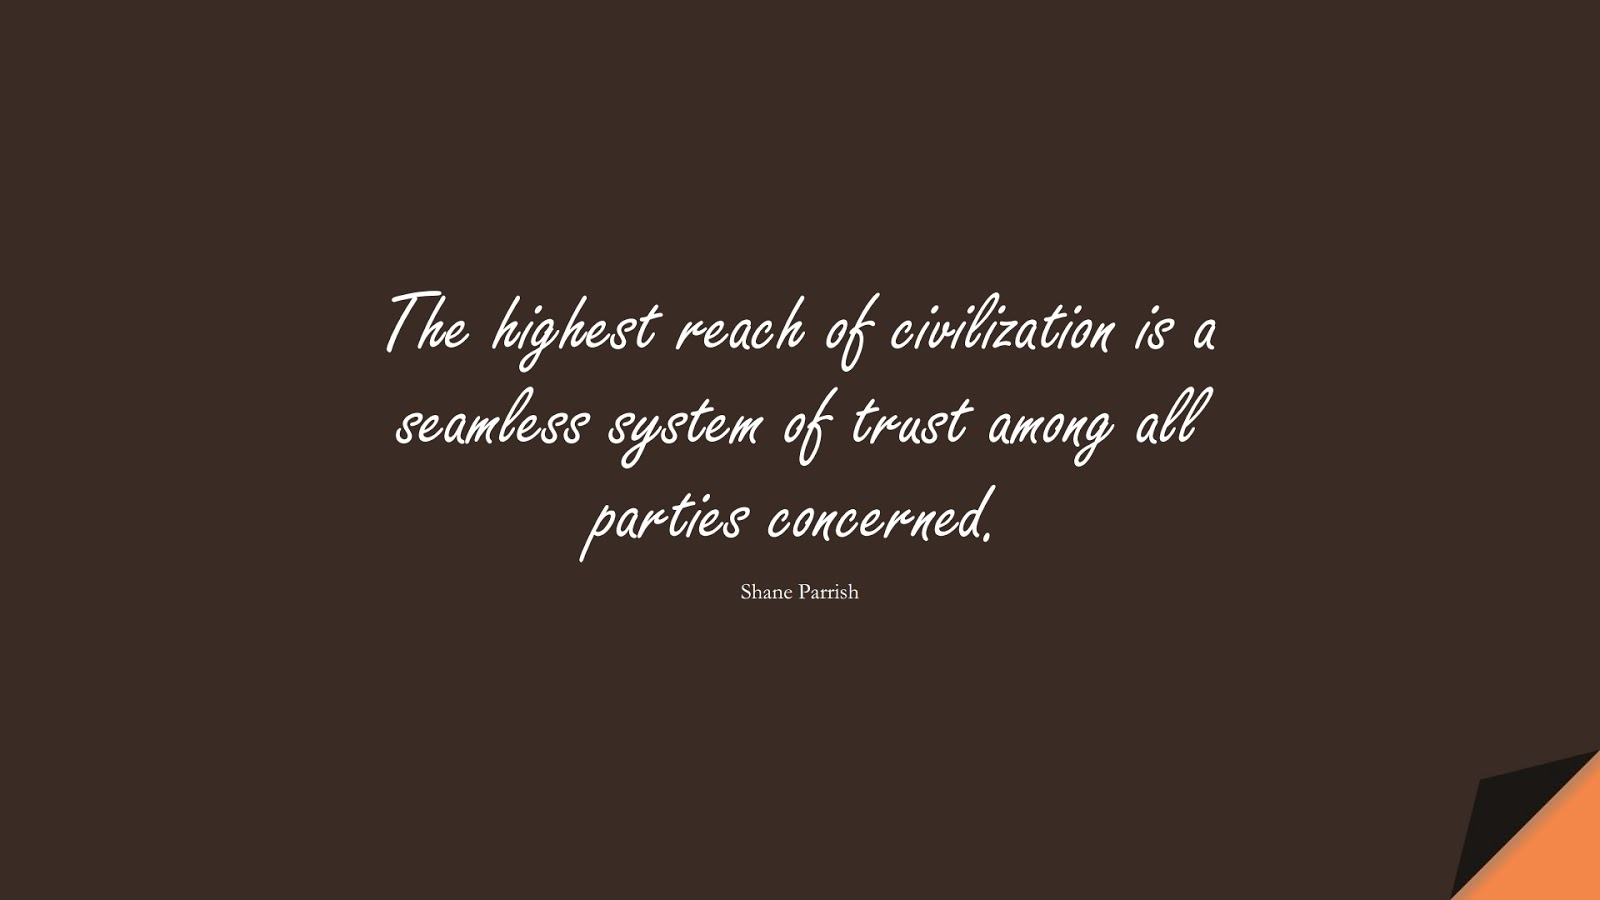 The highest reach of civilization is a seamless system of trust among all parties concerned. (Shane Parrish);  #HumanityQuotes